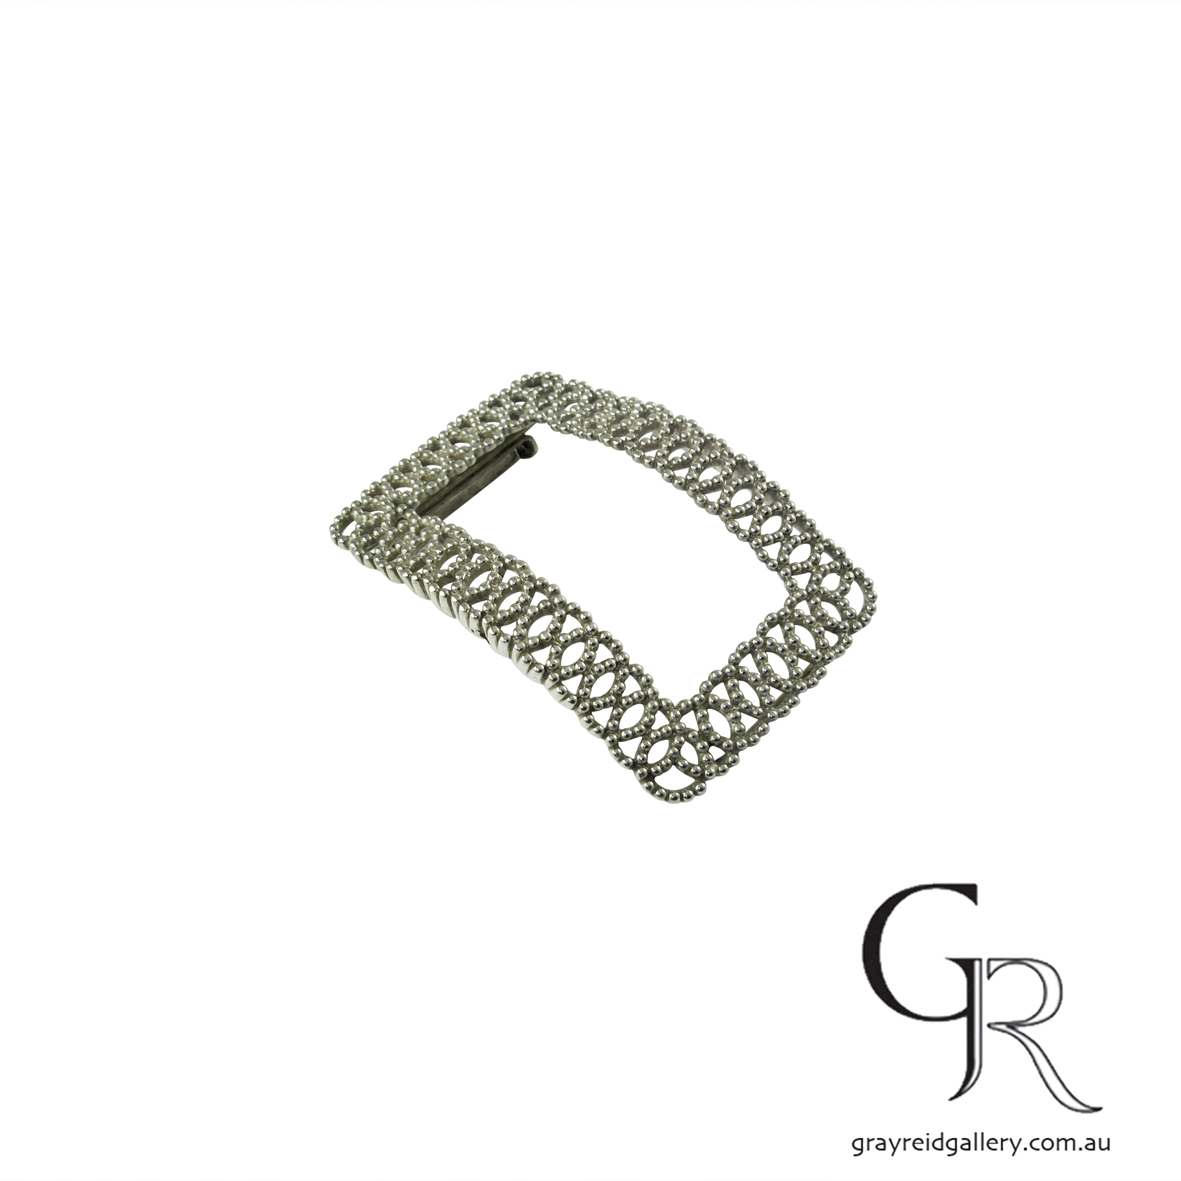 antiques and collectables melbourne sterling silver belt buckle Gray Reid Gallery 12.jpg